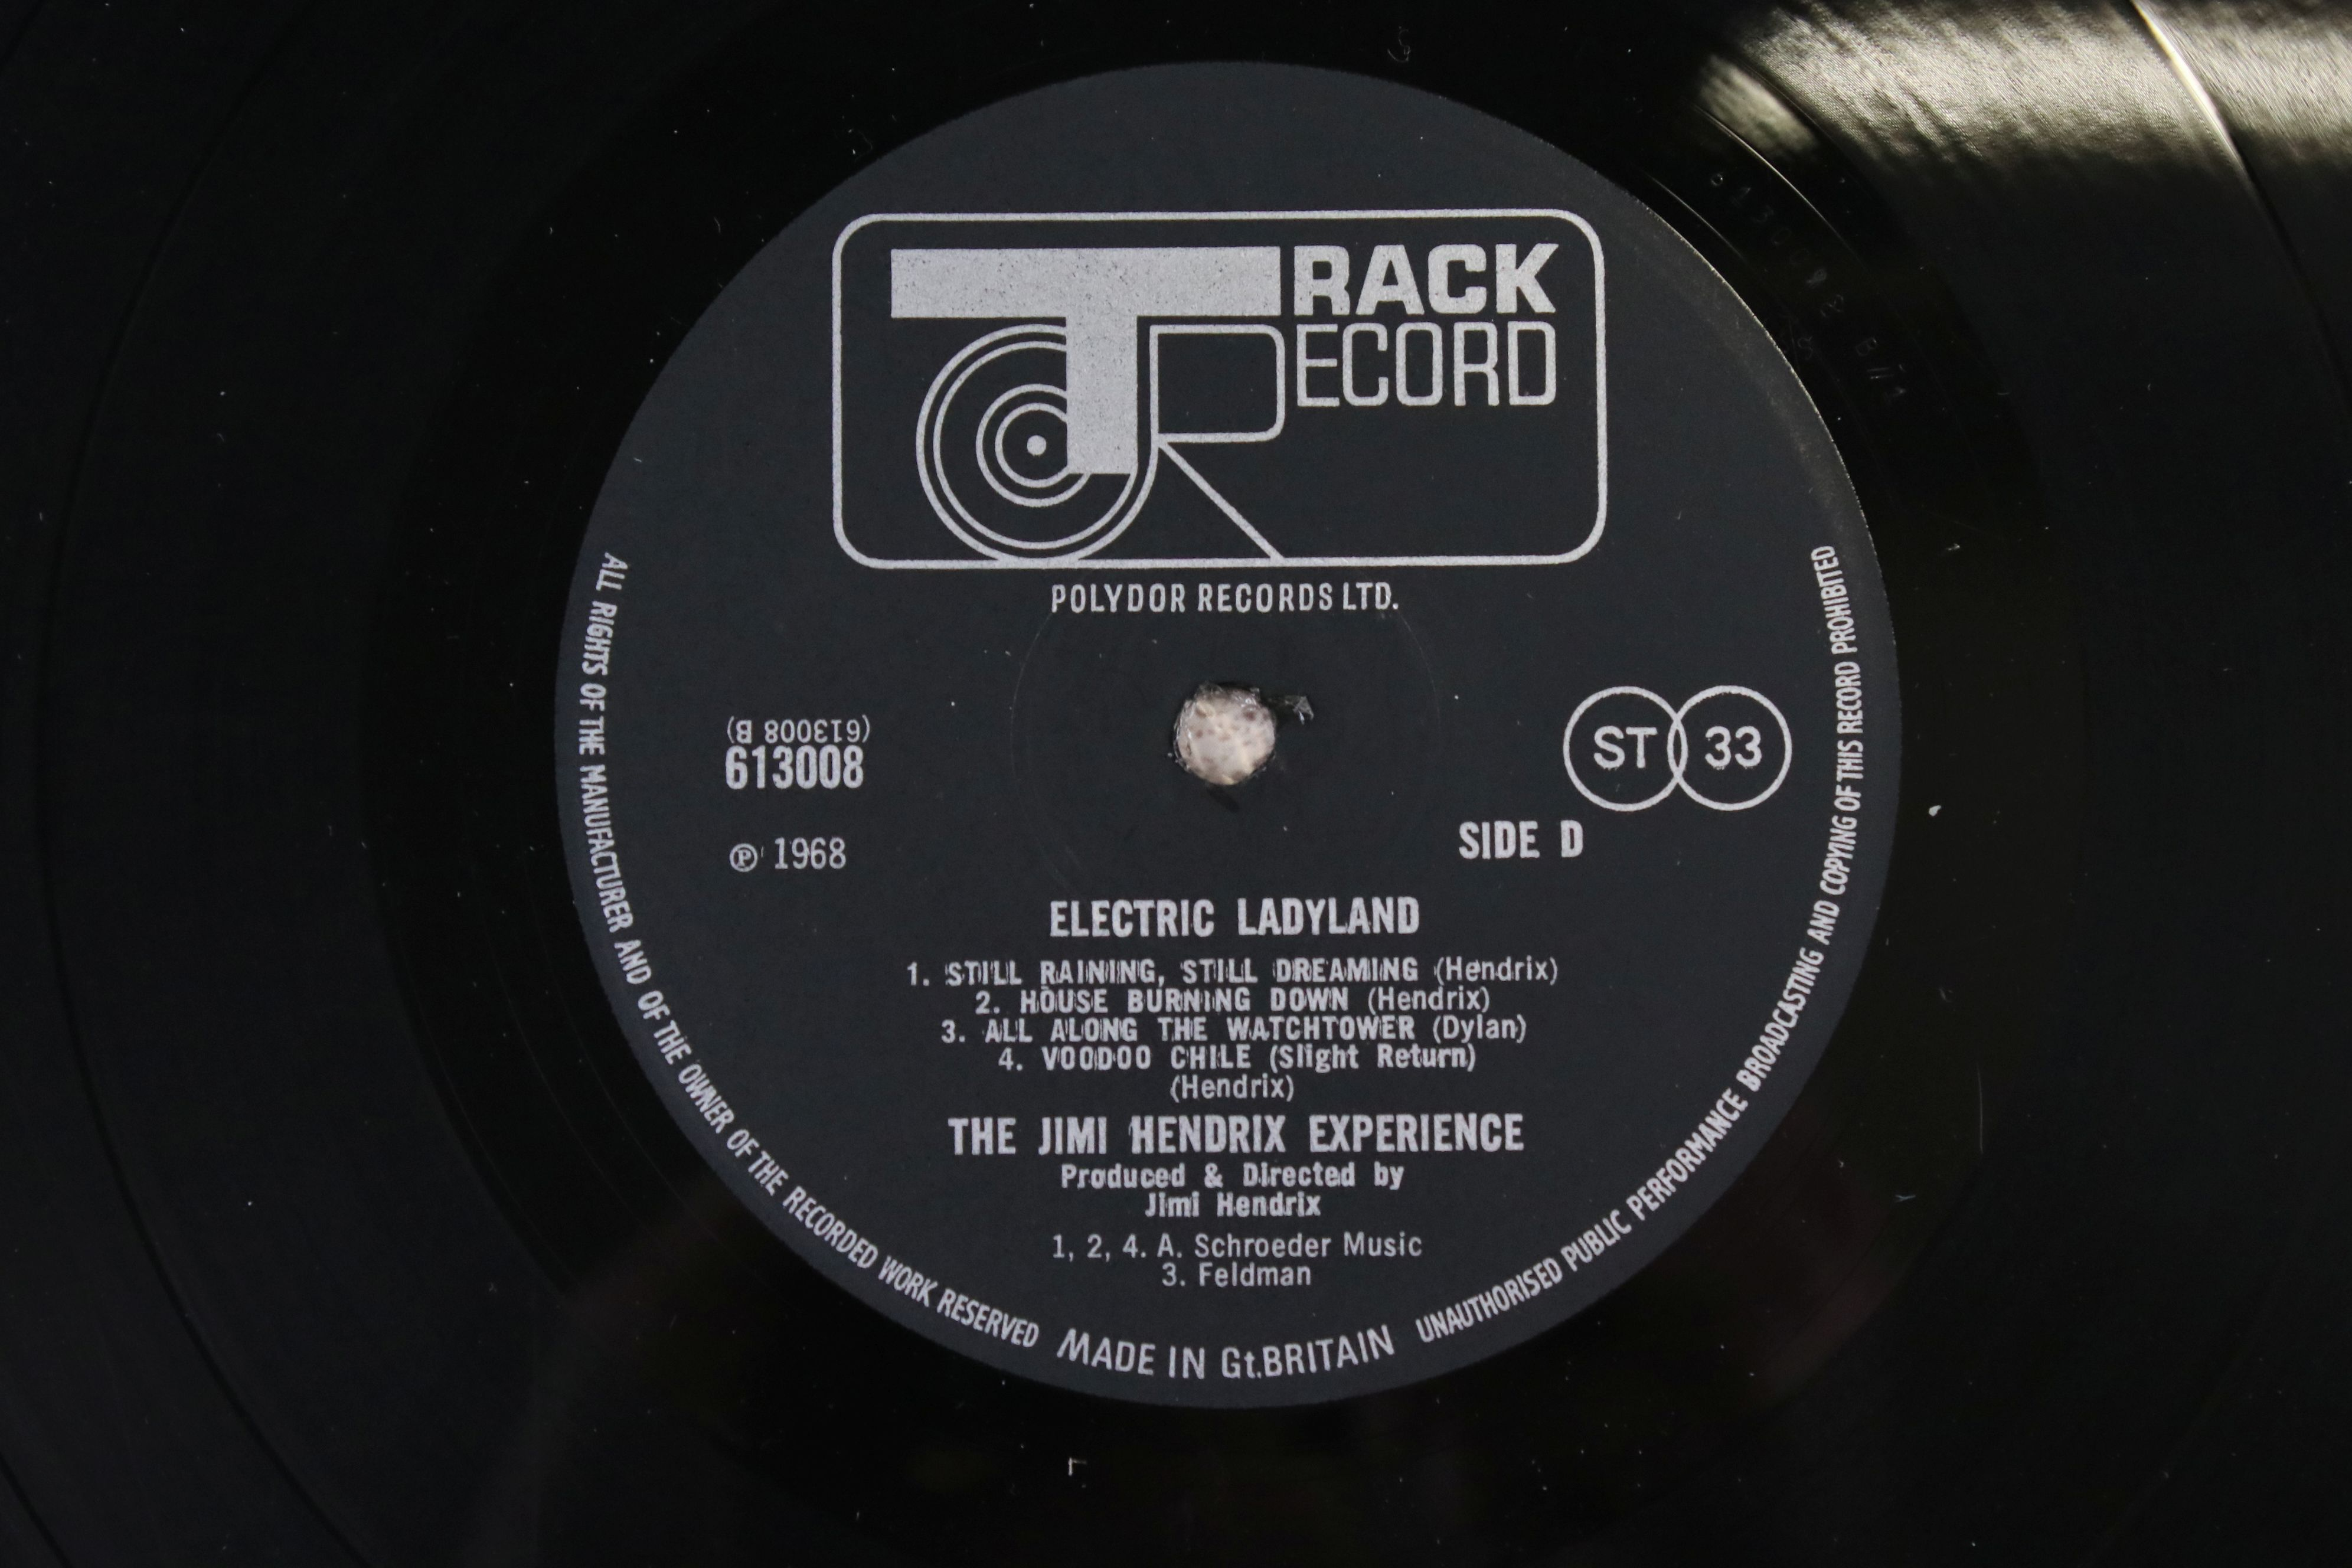 Vinyl - Jimi Hendrix Electric Ladyland on Track 61300819 blue text, Jimi to the right when - Image 4 of 9